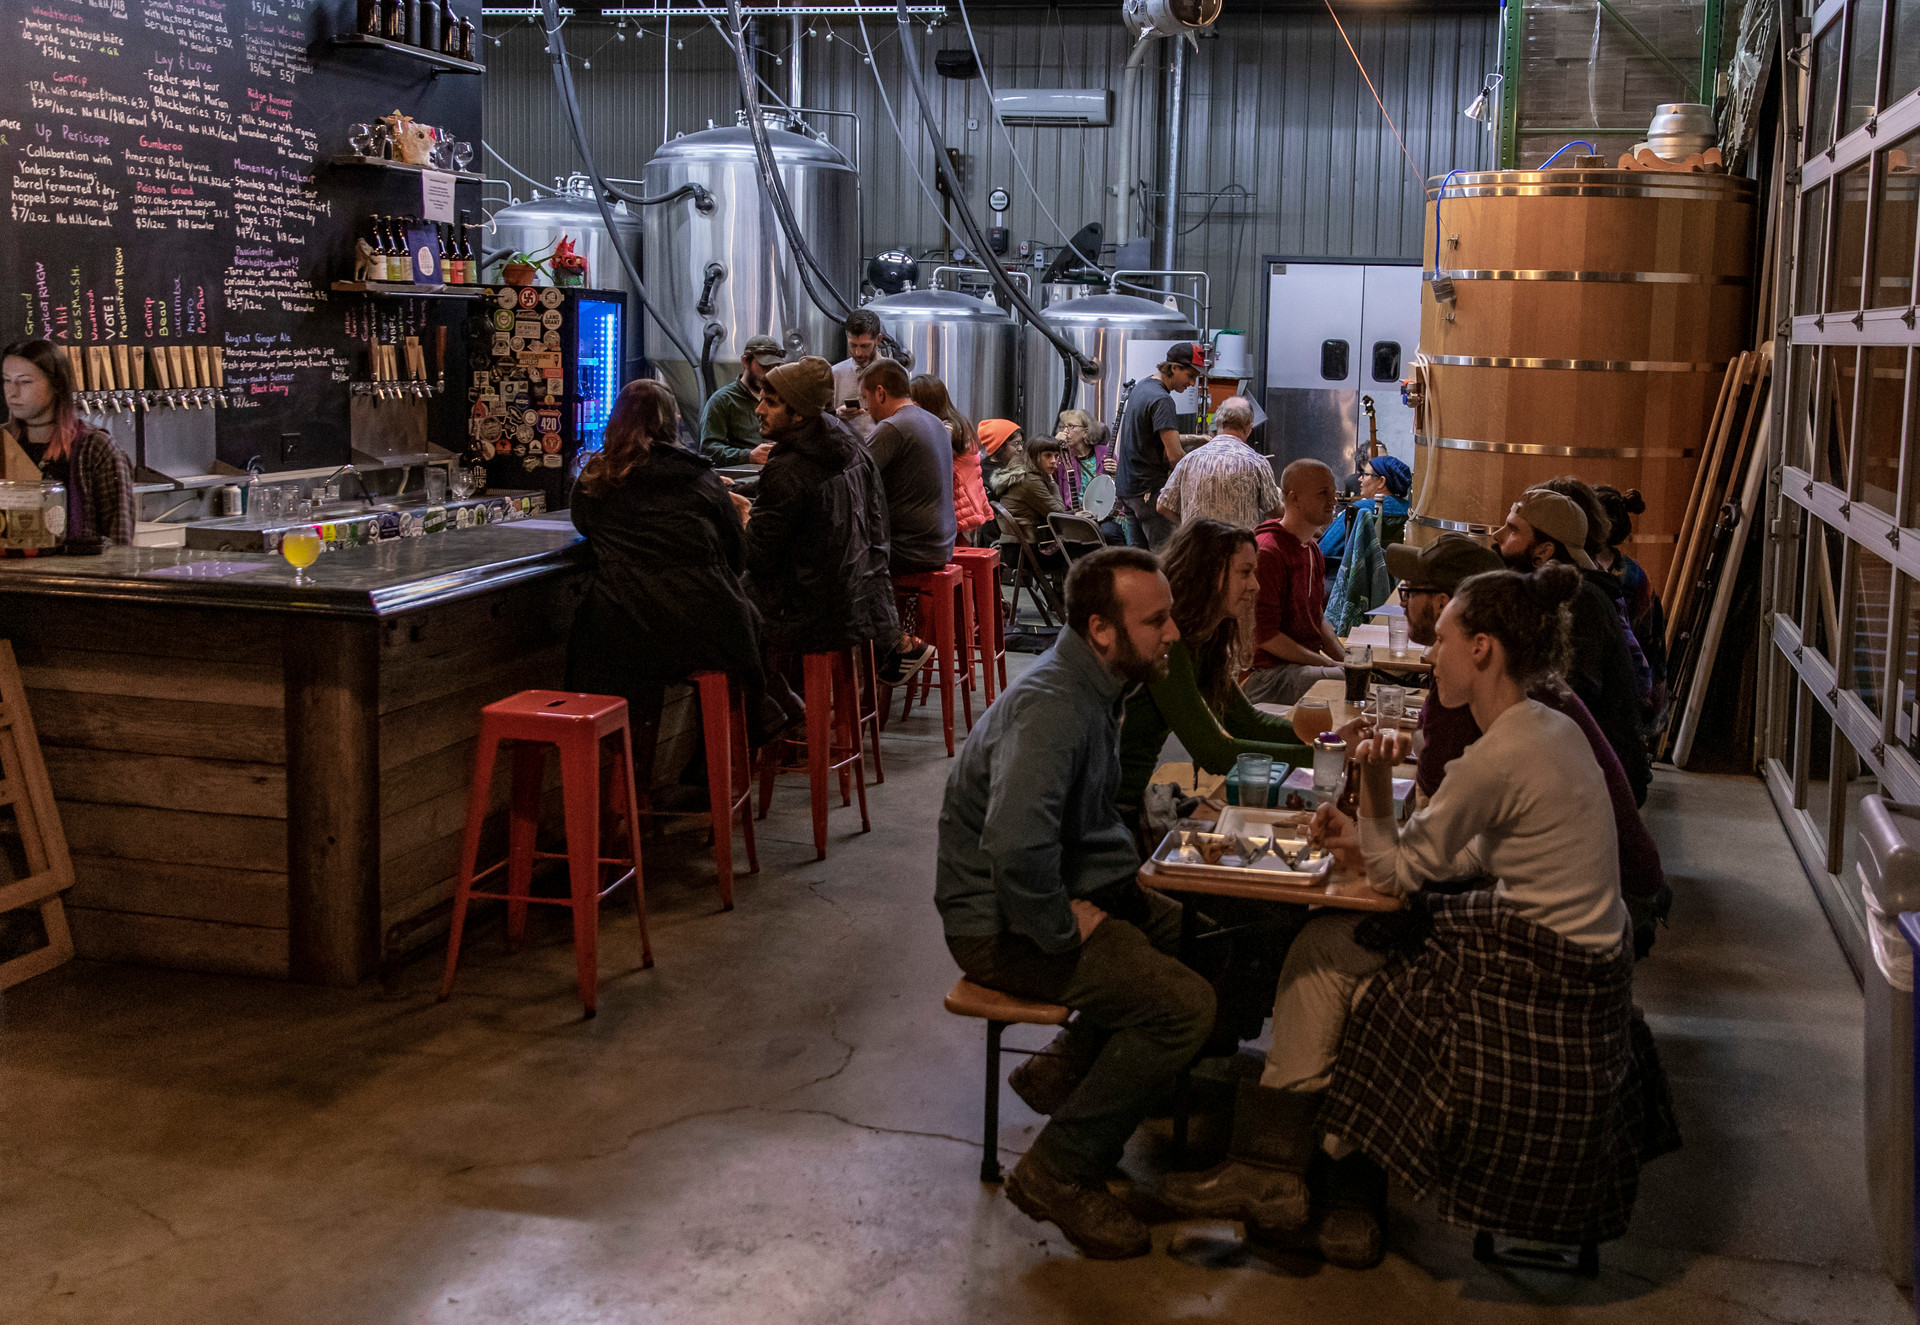 People crowd the taproom on Old Time Music Night on October 17, 2018. Old Time Music Night happens every Wednesday night during the summer and fall seasons. The jam sessions happen outside during those seasons when the weather permits it.